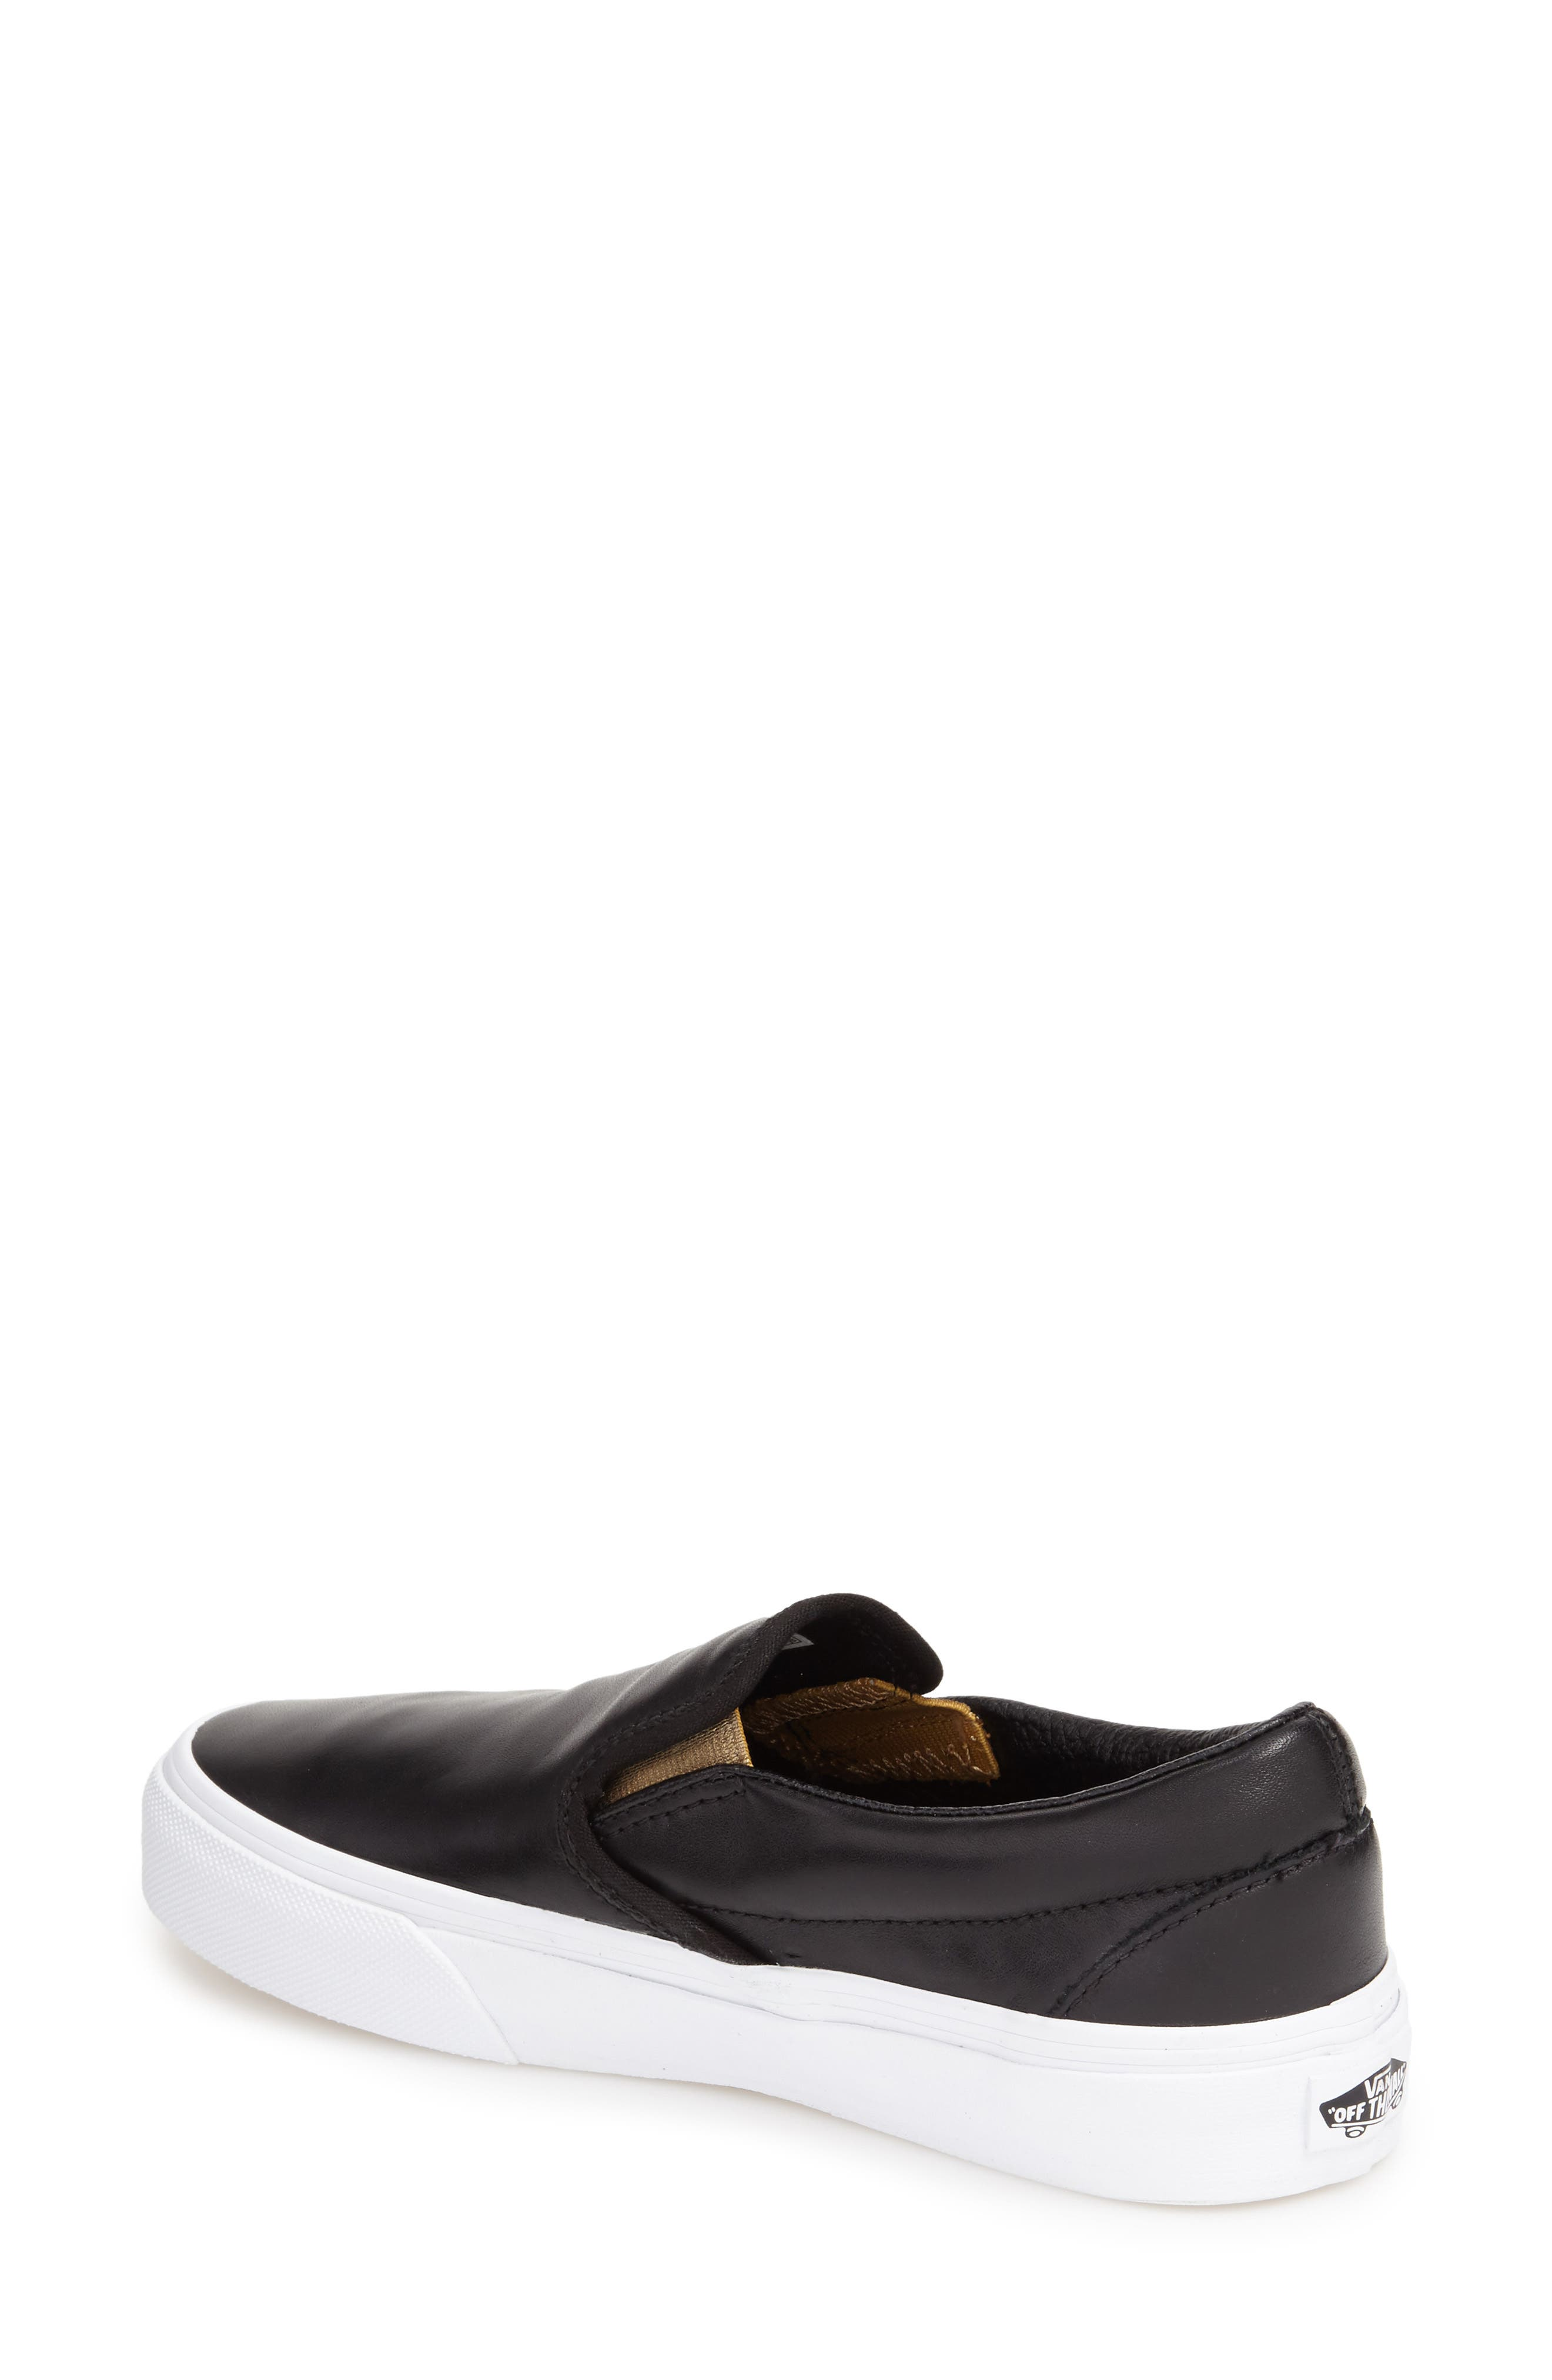 Classic Slip-On Sneaker,                             Alternate thumbnail 228, color,